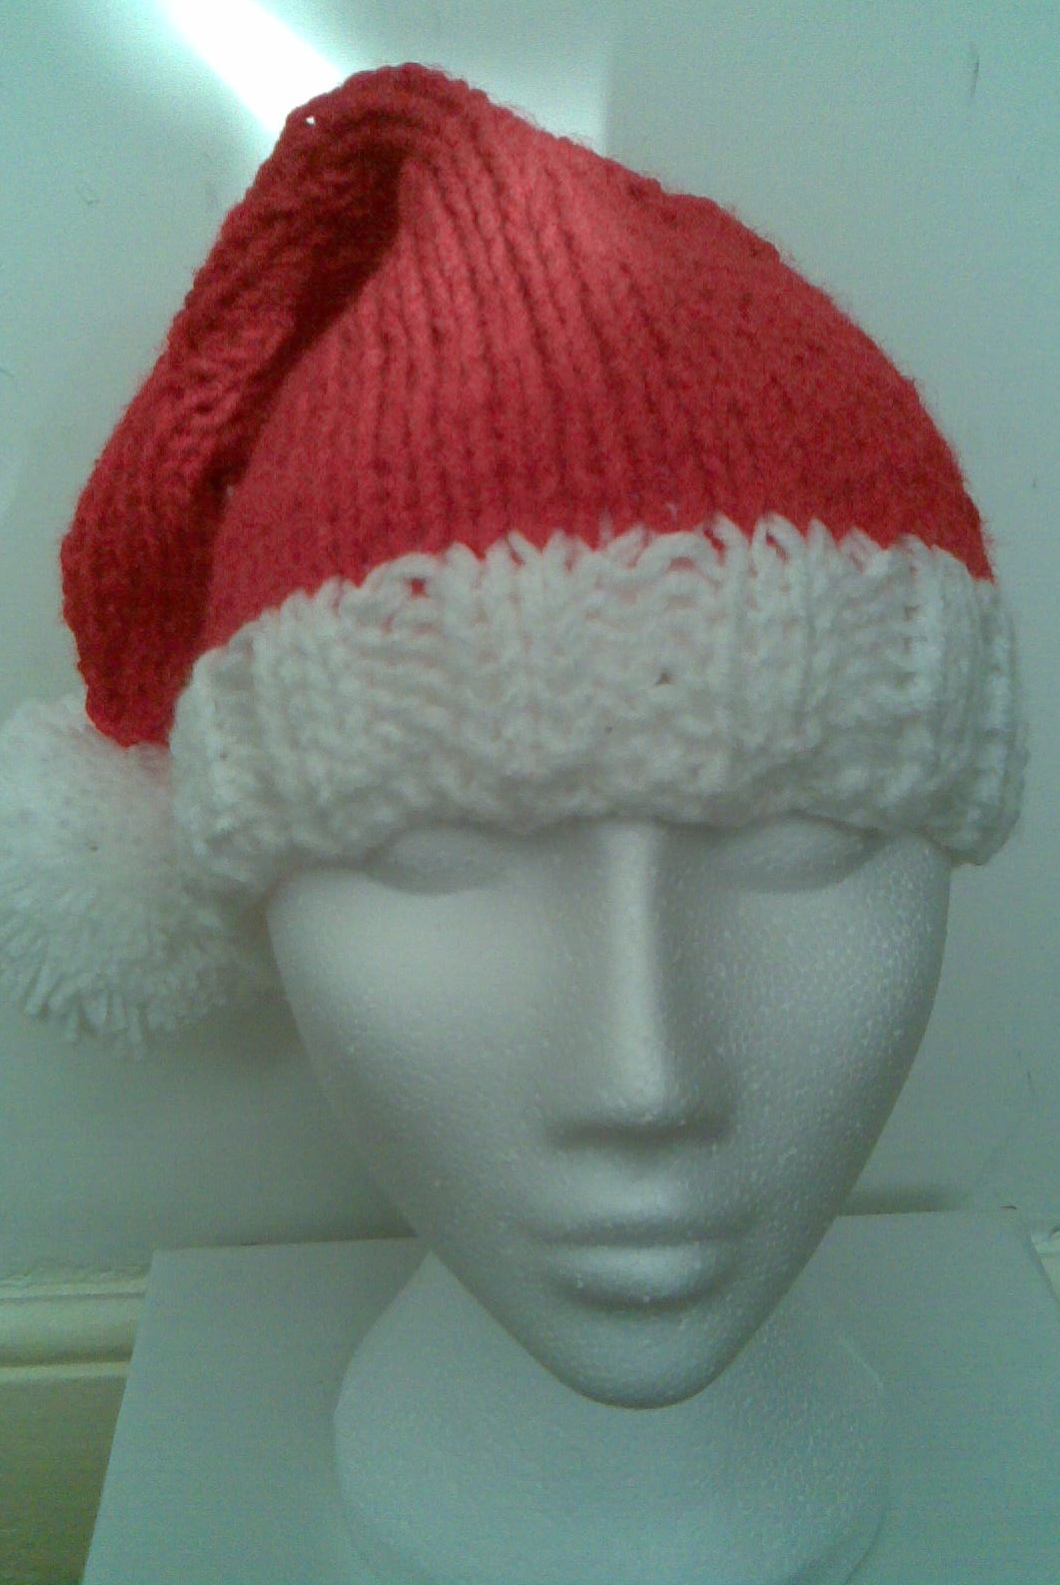 Knit Santa Hat Pattern : Musings of a knit-a-holic from Wales: Knitting Pattern: Santa hat